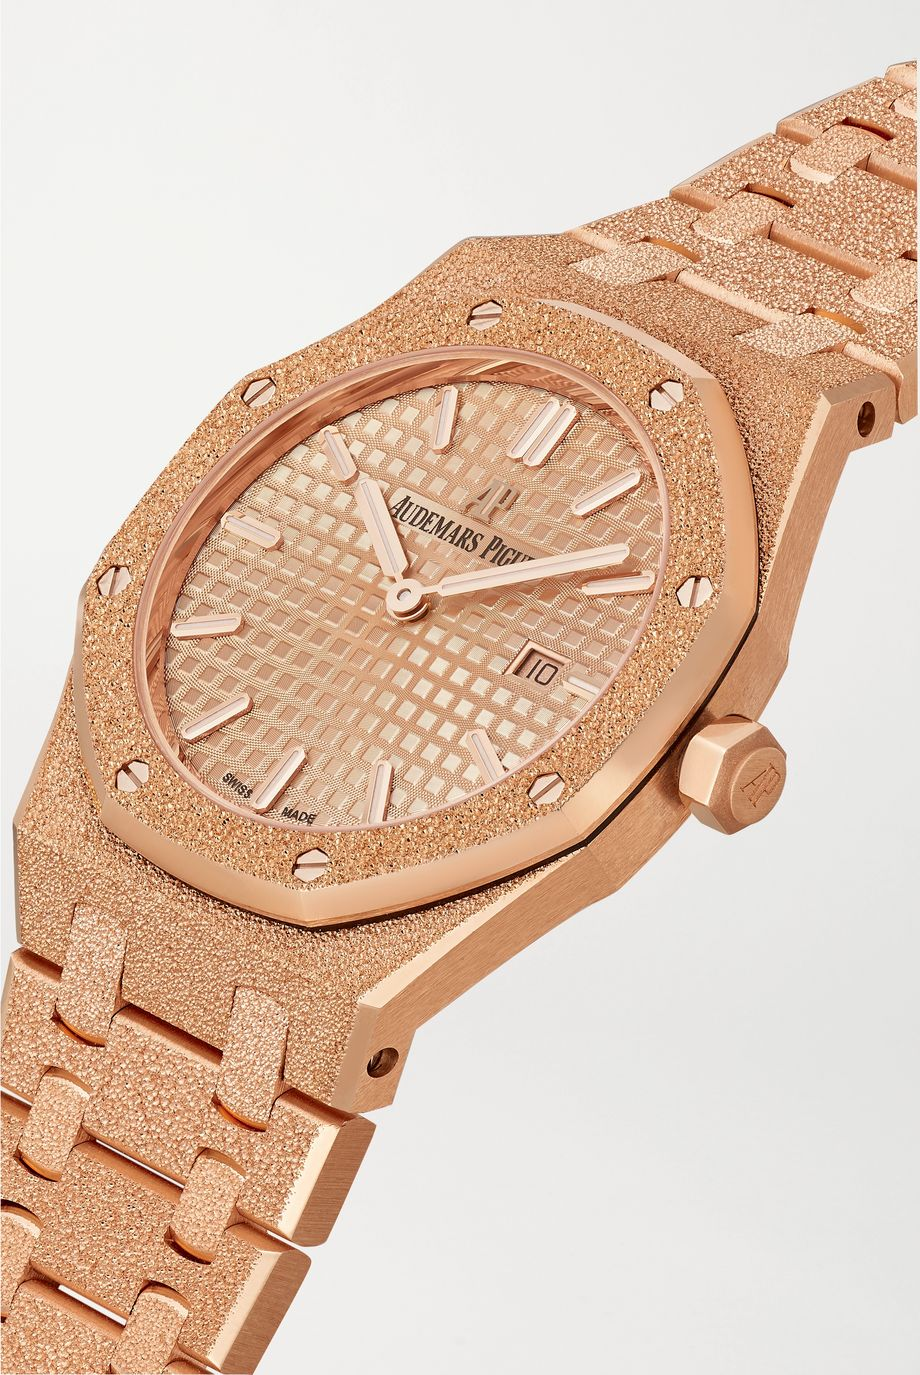 Audemars Piguet Montre en or rose 18 carats givré Royal Oak 33 mm